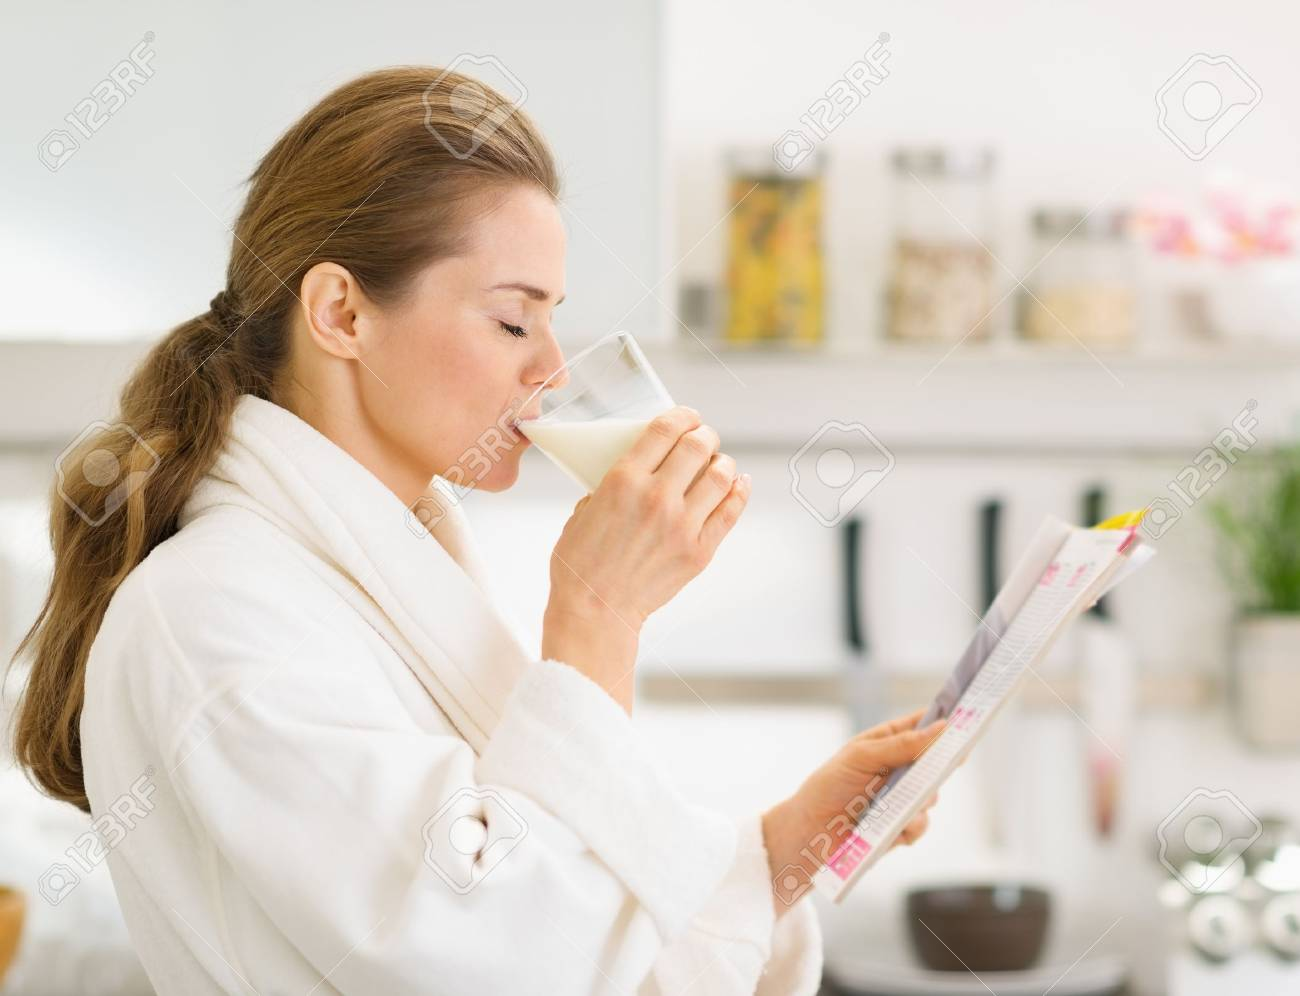 Young woman in bathrobe with magazine and drinking milk Stock Photo - 17800081